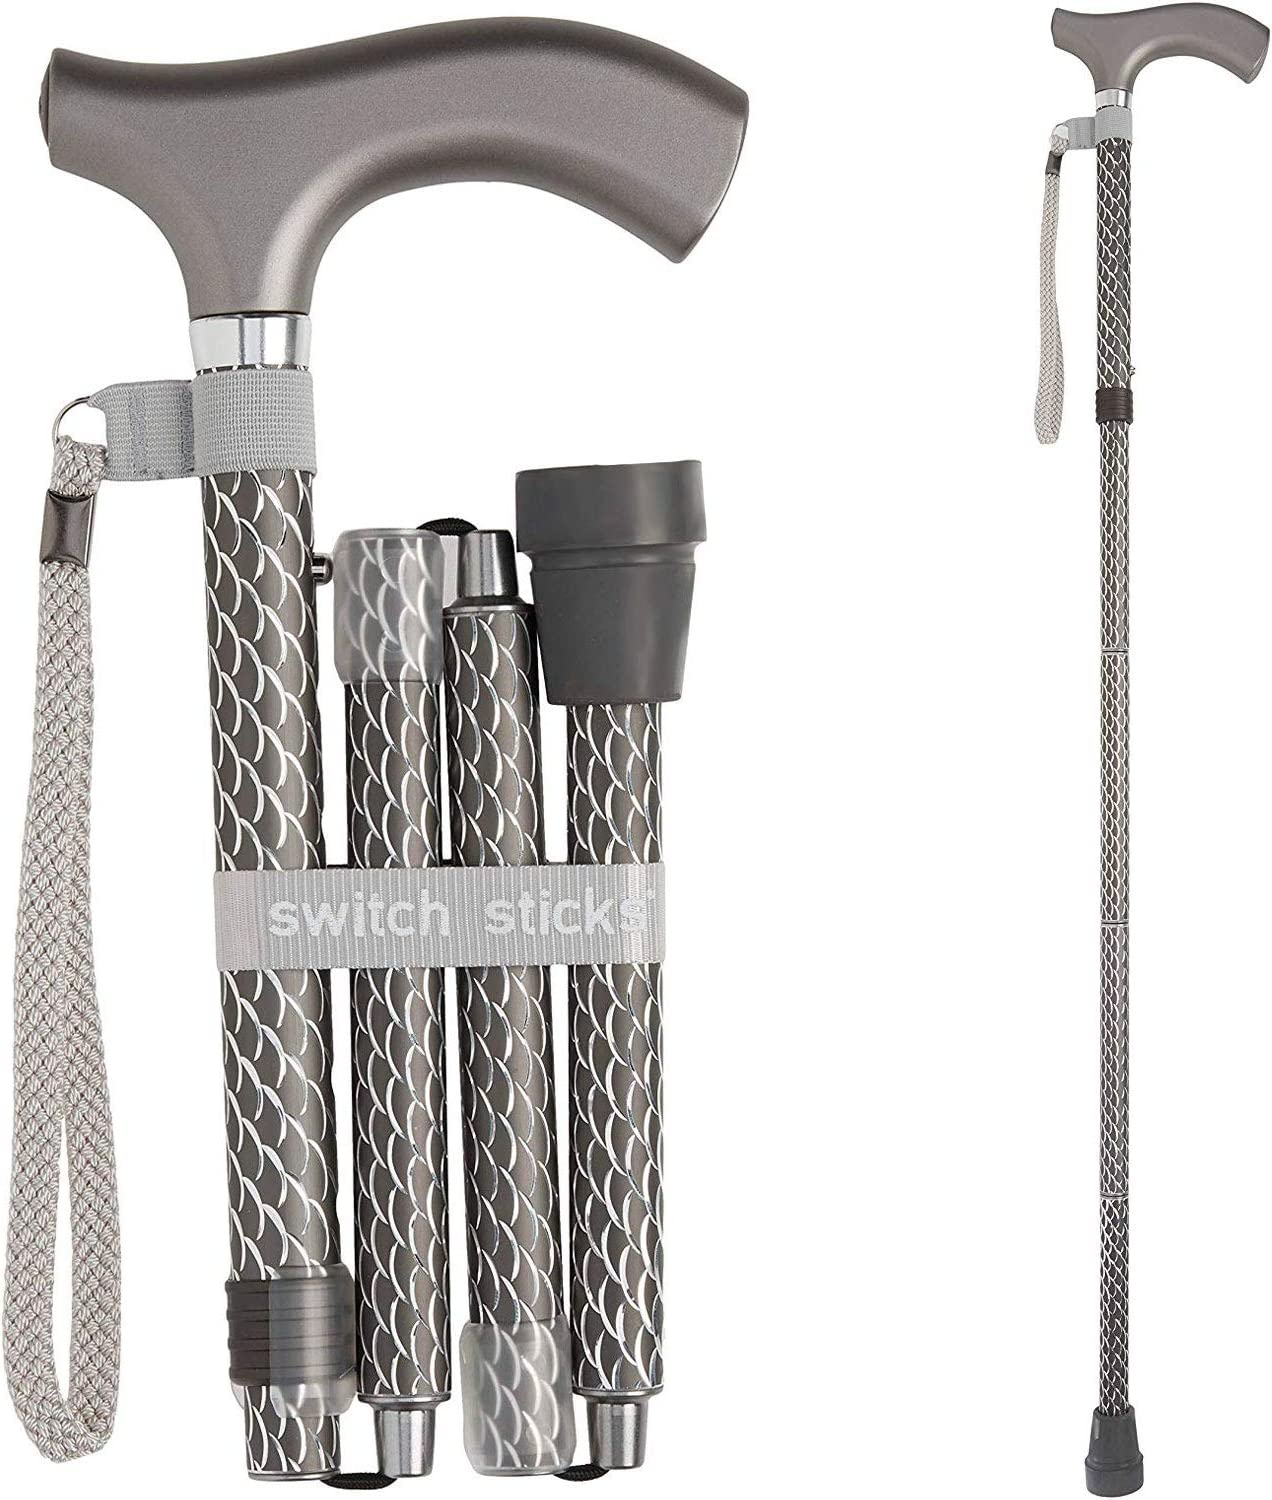 Switch Sticks Aluminum Adjustable Folding Cane and Walking Stick collapses and adjusts from 32 to 37 inches, Engraved Graphite